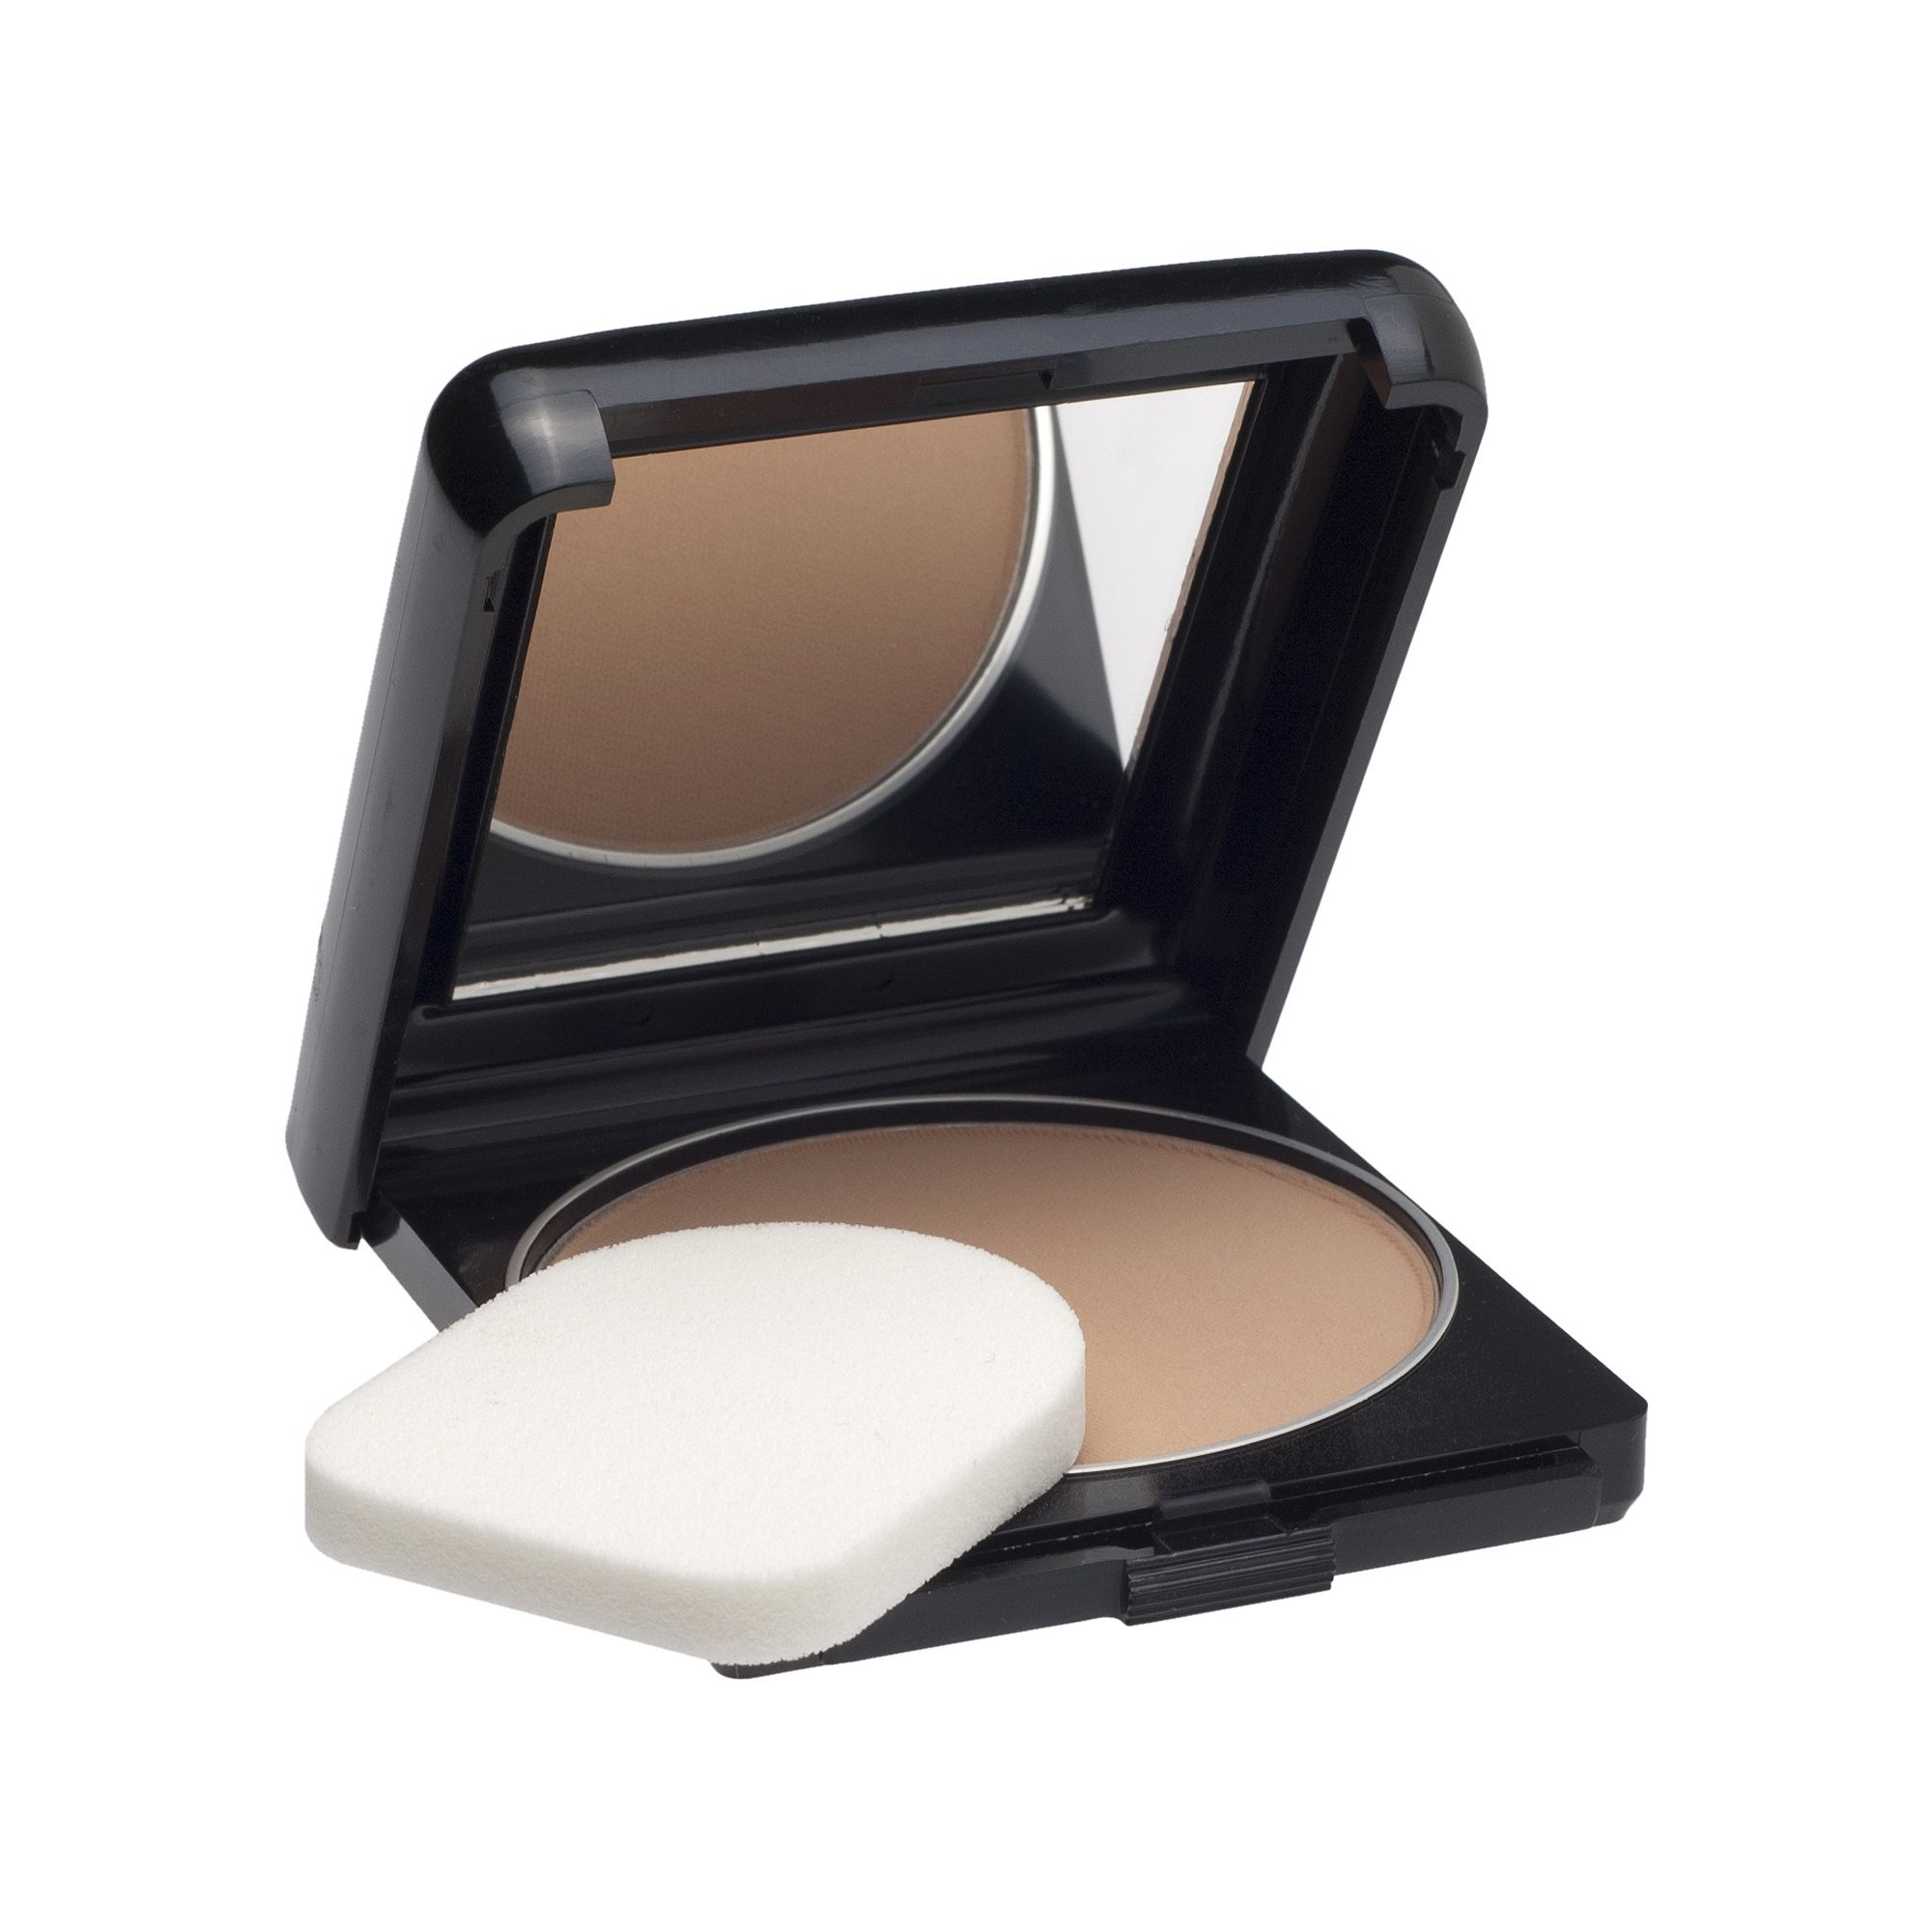 COVERGIRL Simply Powder Compact 525 Buff Beige .41oz